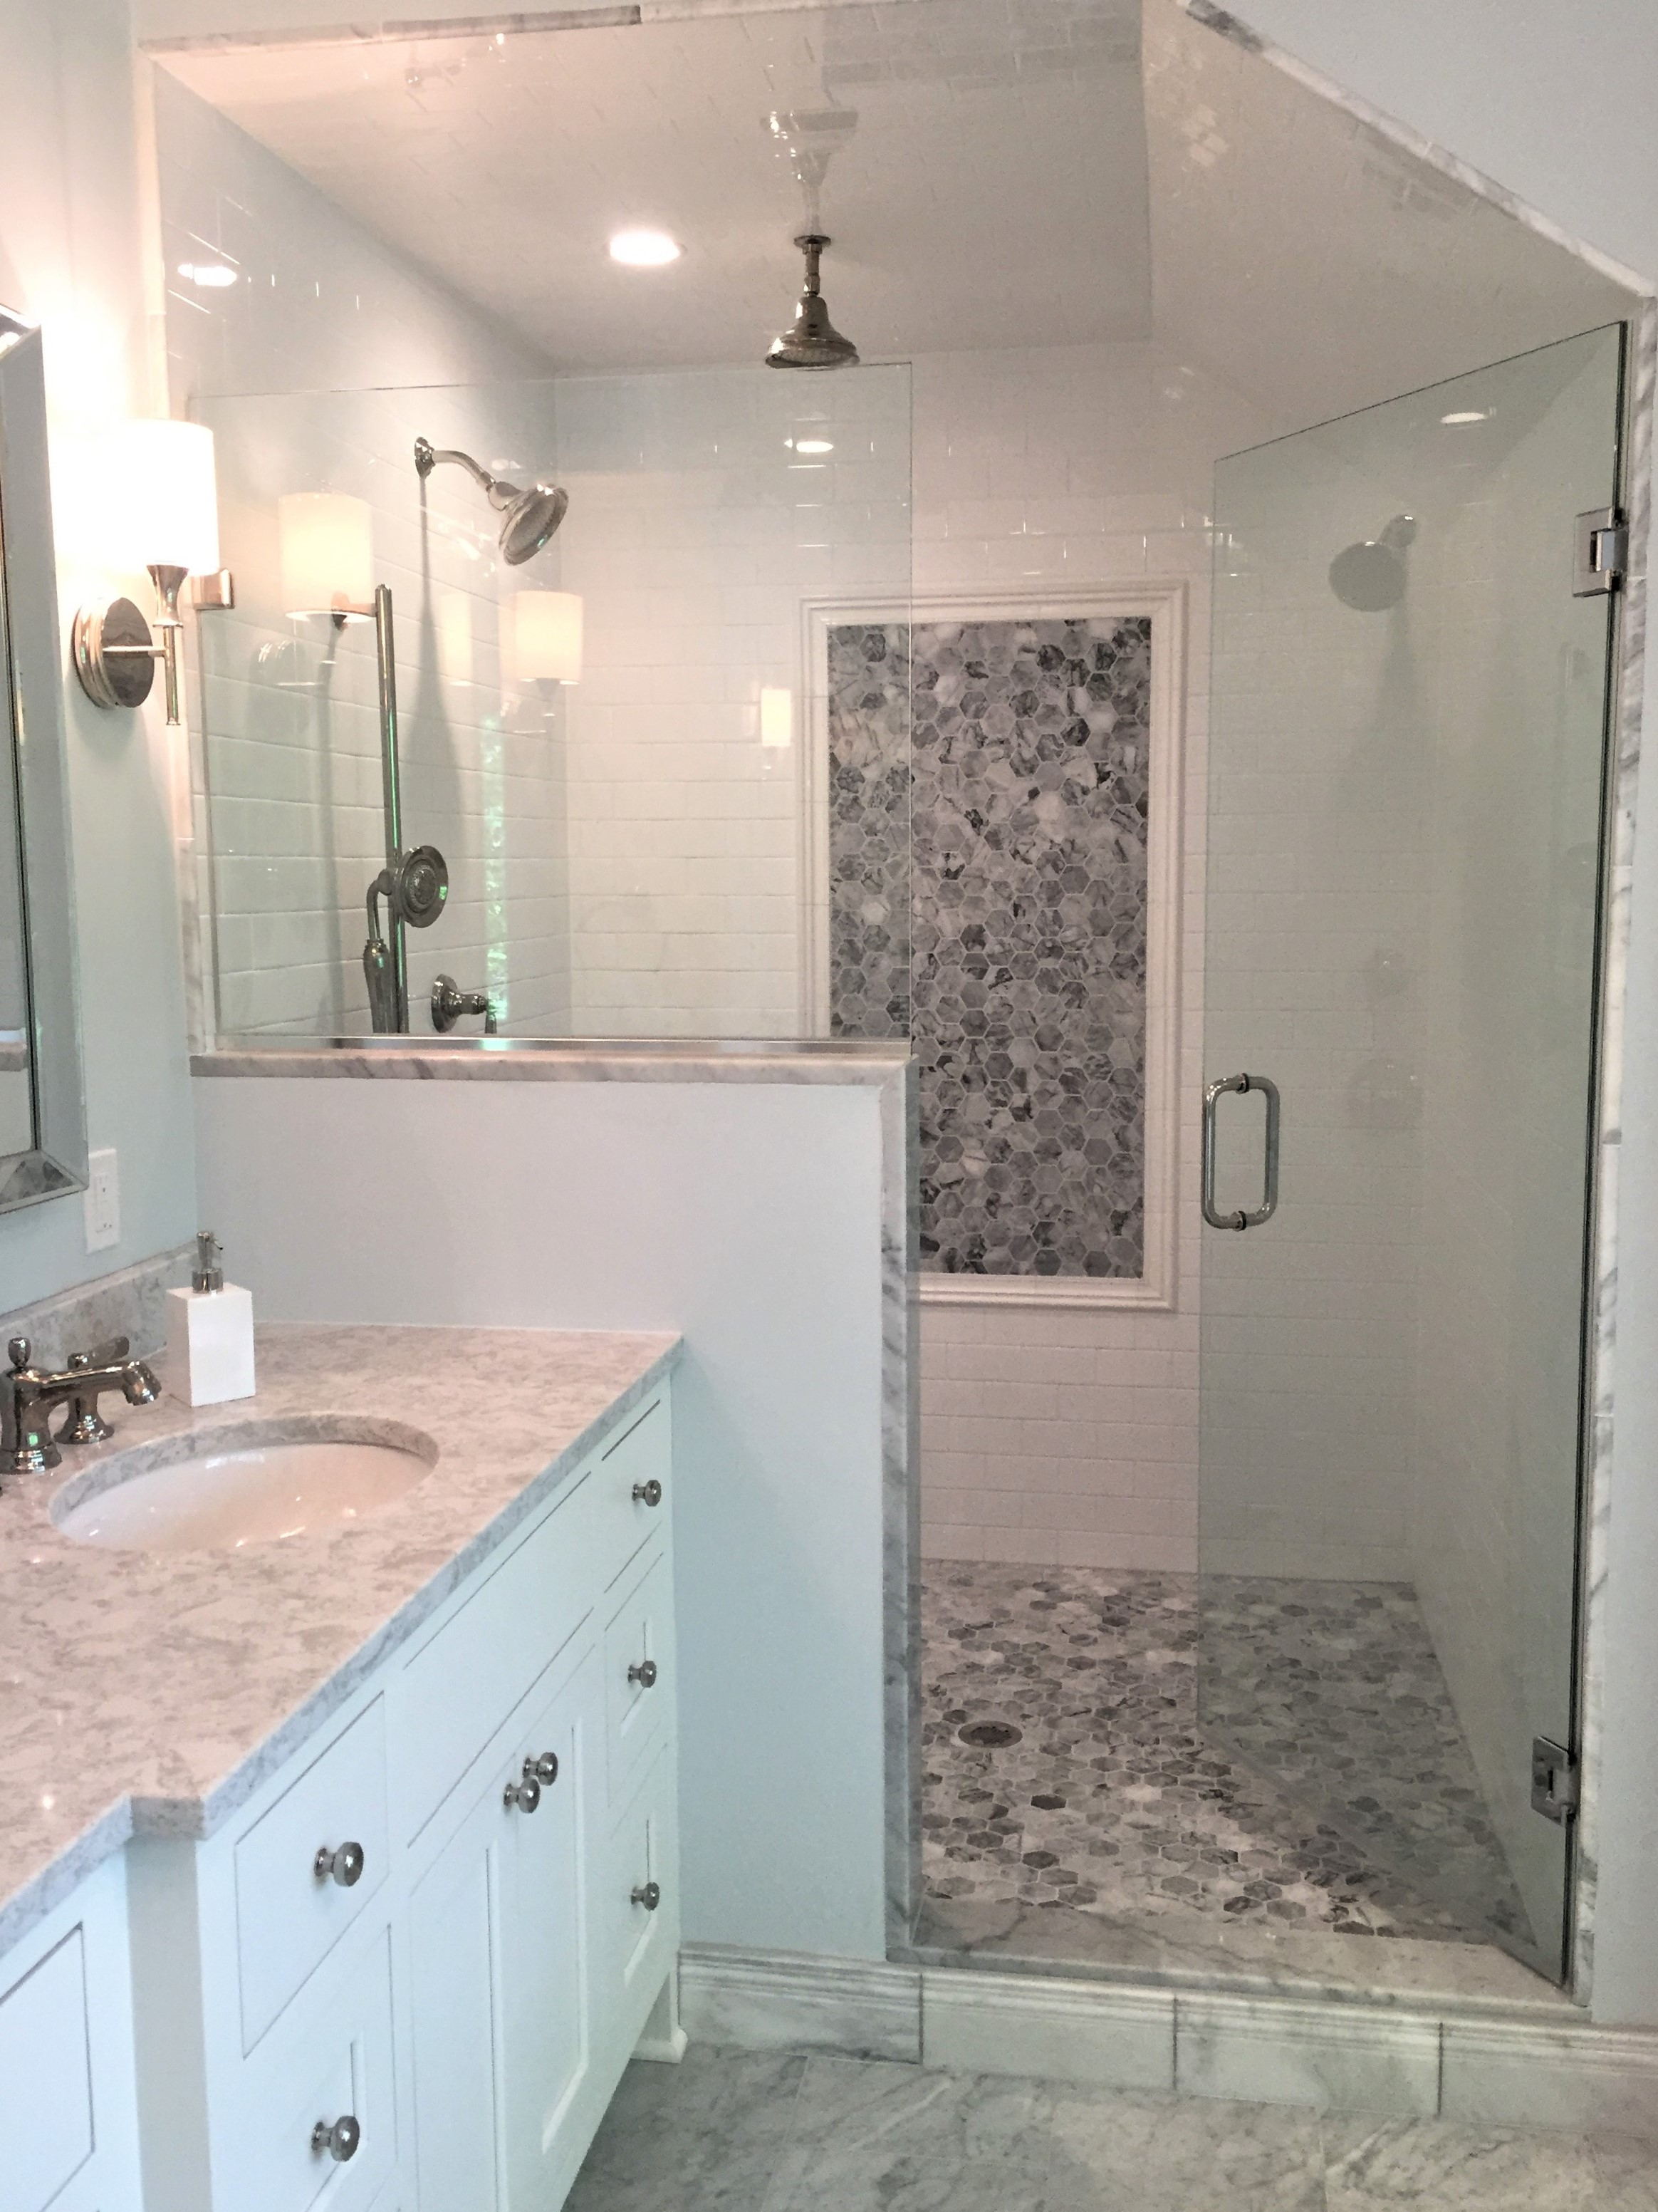 Picture of shower in master bathroom